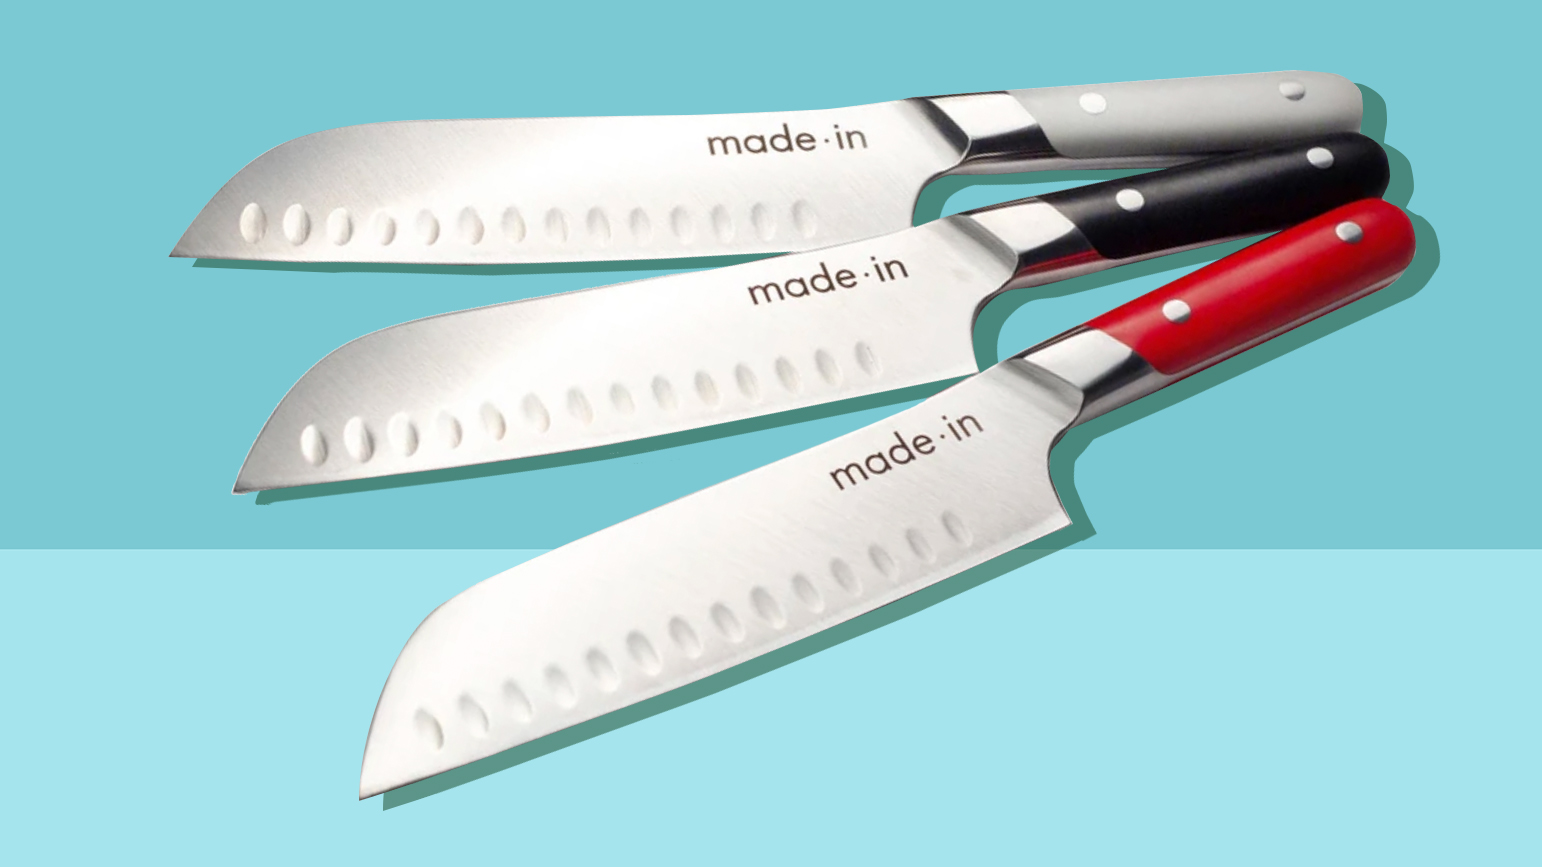 made-in-knives